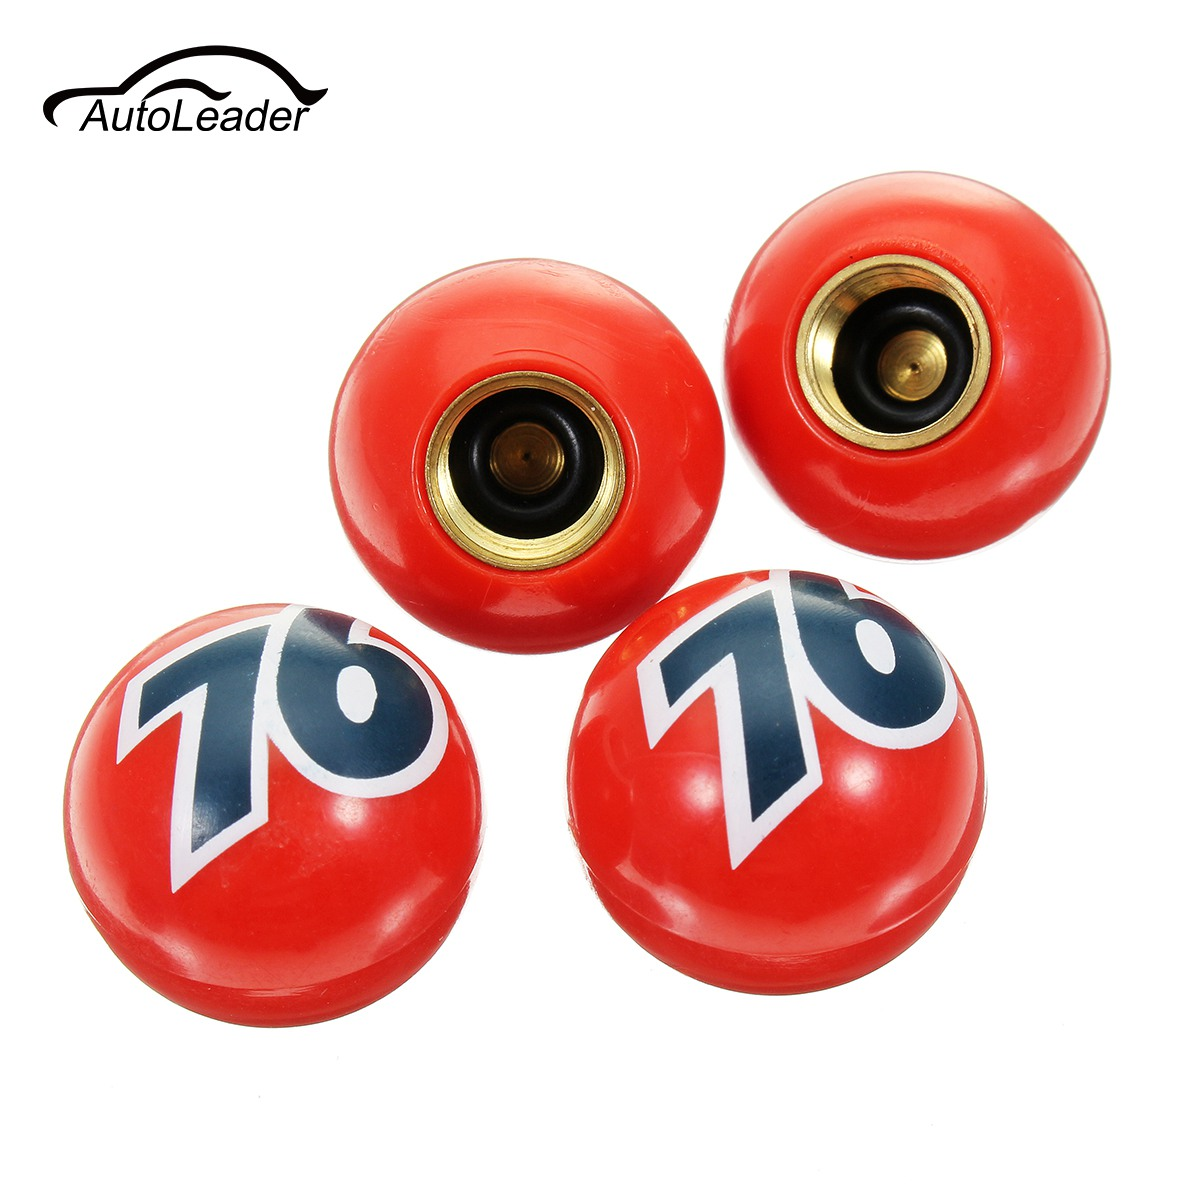 4Pcs Car Bike Tyre Tire Air Valve Stem Dust Caps Universal Cover For Car Bike Red Number 76 Ball Plastic Sphere micro securedigital 32gb a data sdhc class 10 uhs i a1 ausdh32guicl10a1 r